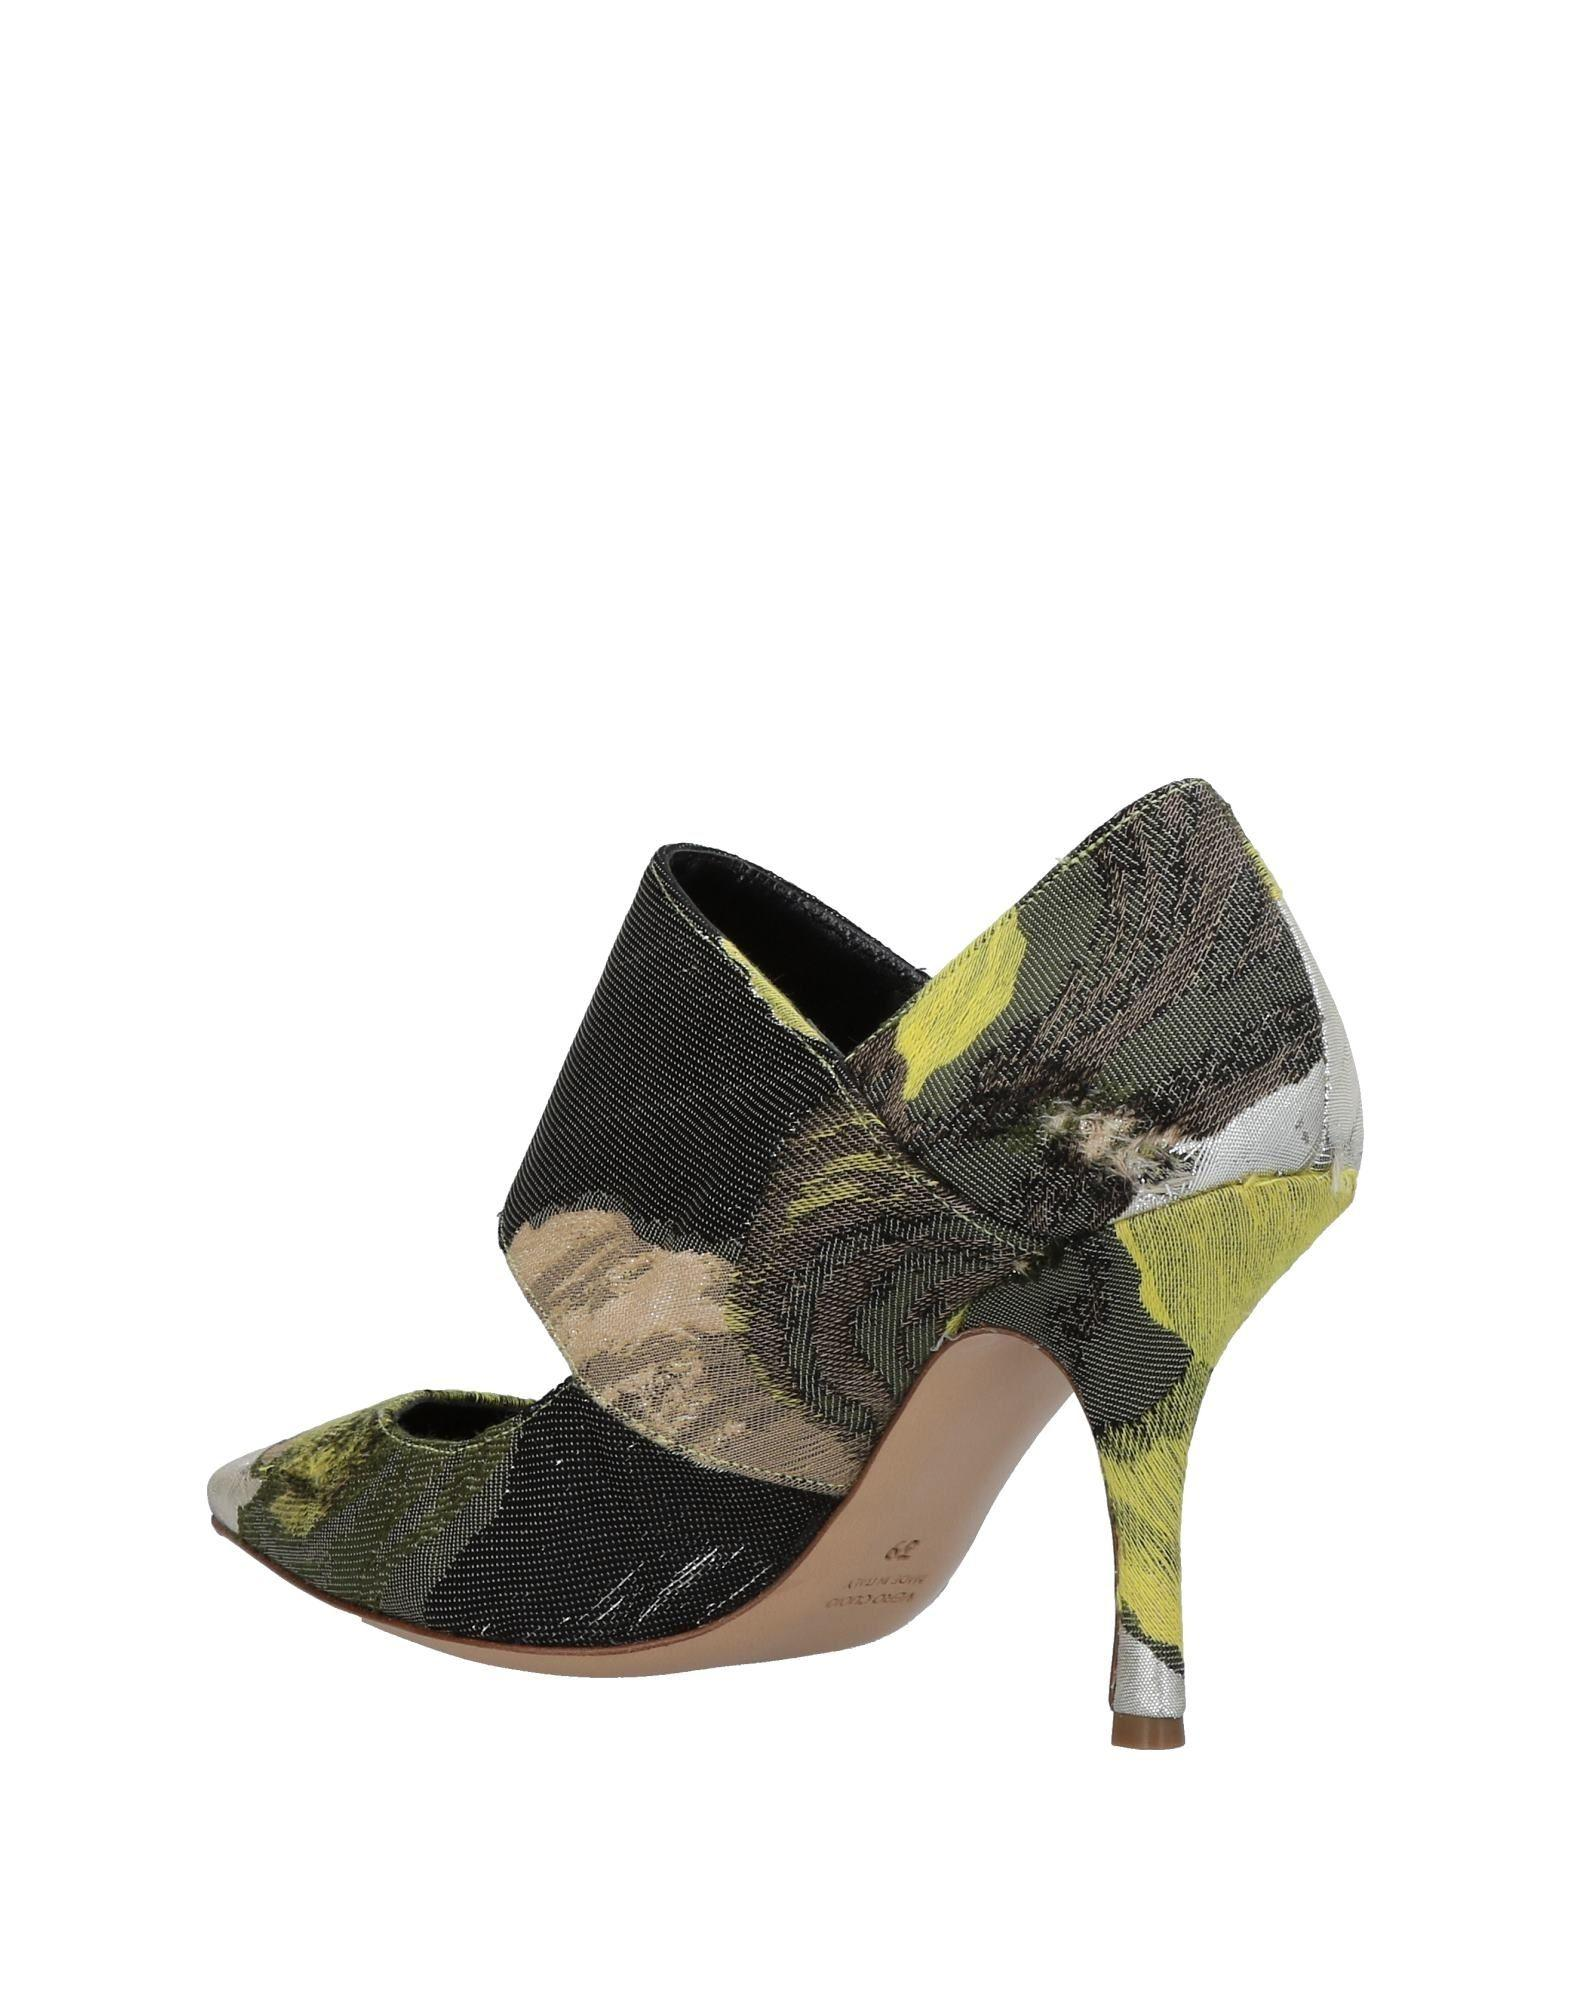 Cheap For Cheap Outlet Top Quality Pre-owned - PYTHON SANDALS Erika Cavallini Semi Couture 7Kk4J4